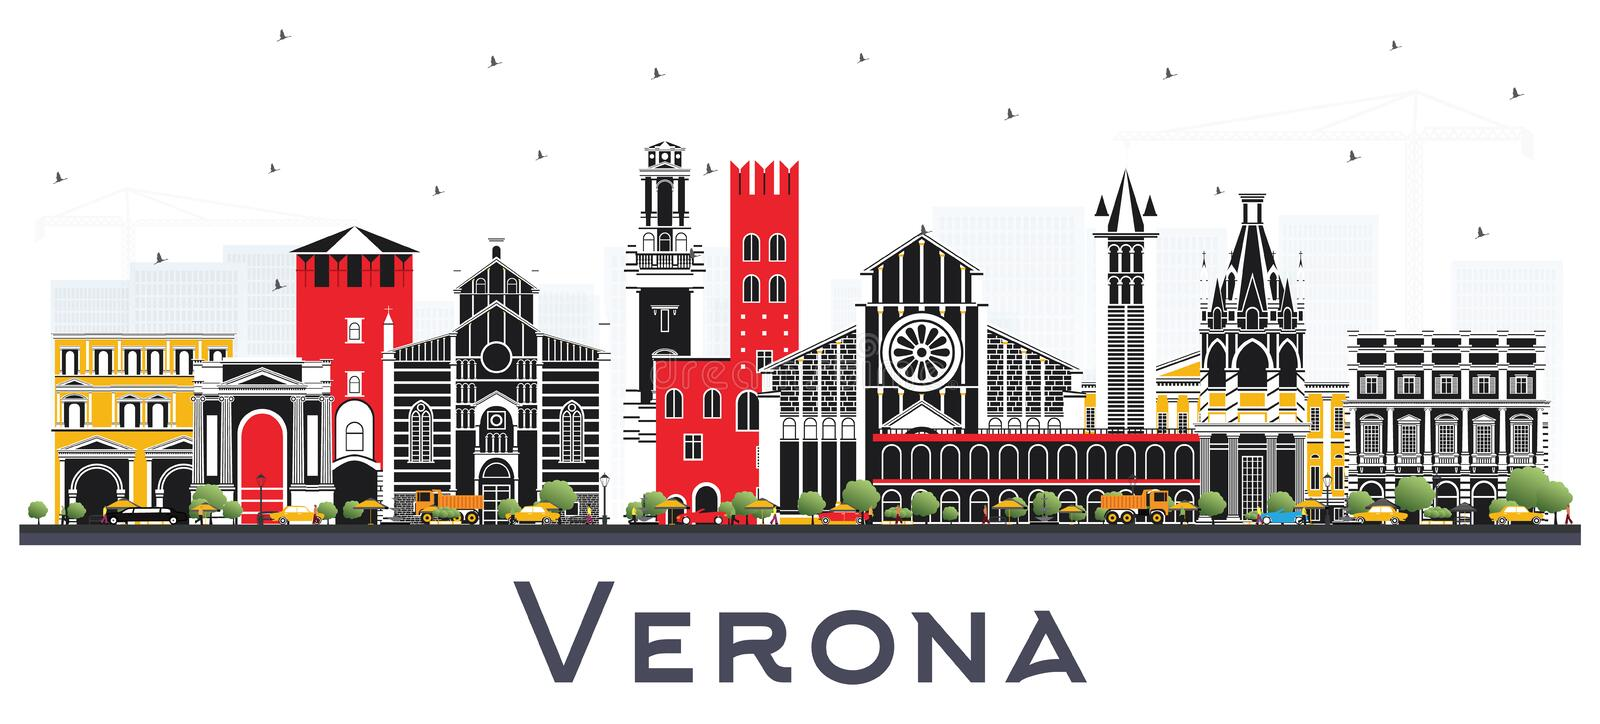 Verona Italy City Skyline with Color Buildings Isolated on White. Vector Illustration. Business Travel and Tourism Concept with Historic Architecture. Verona stock illustration